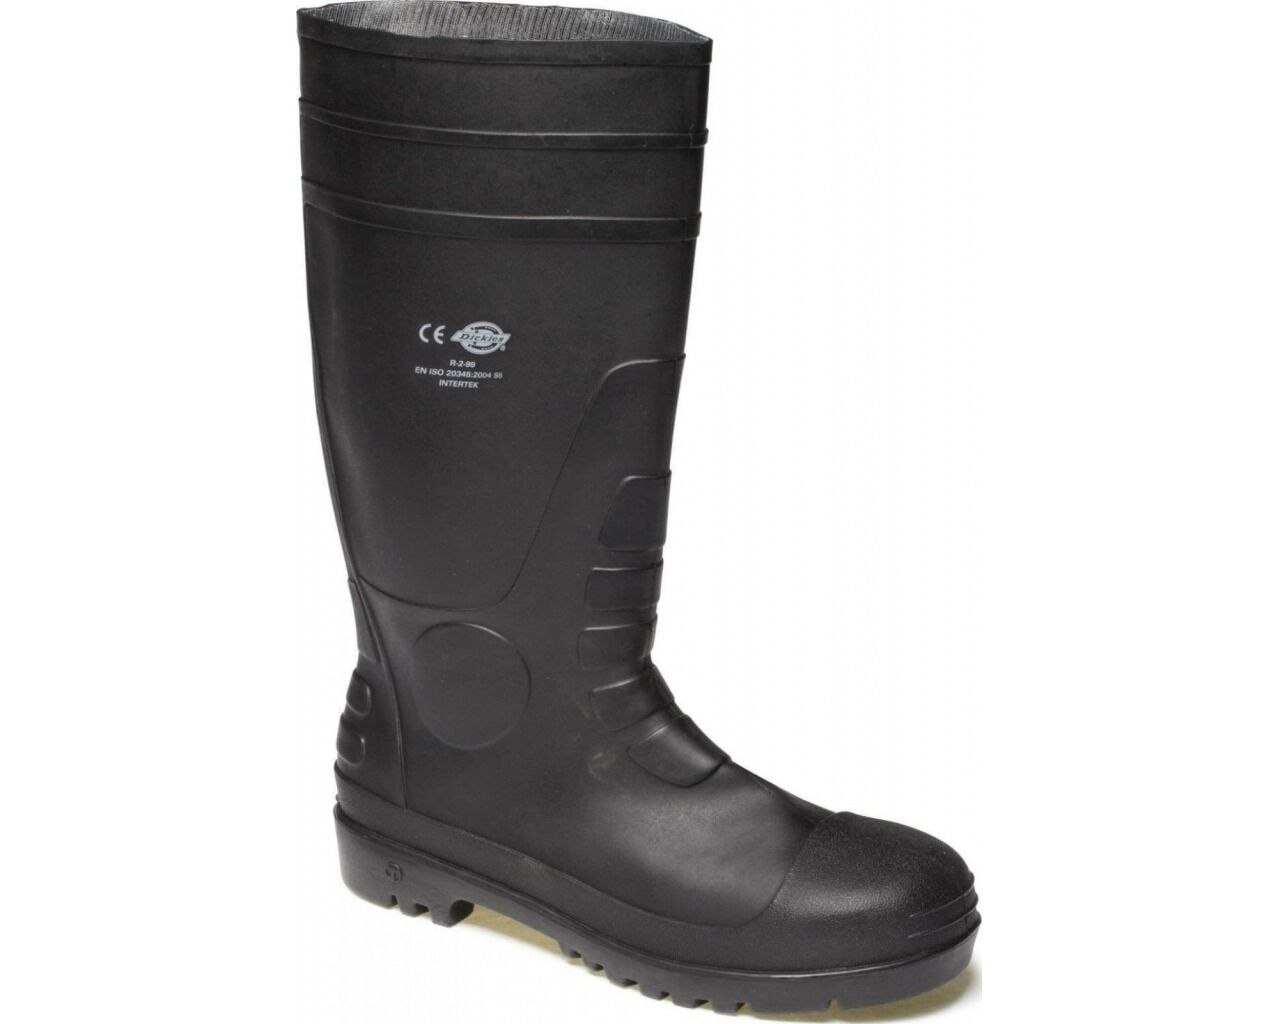 Dickies Super Safety Wellingtons Mens Rubber Steel Toe Midsole Boots UK6-12